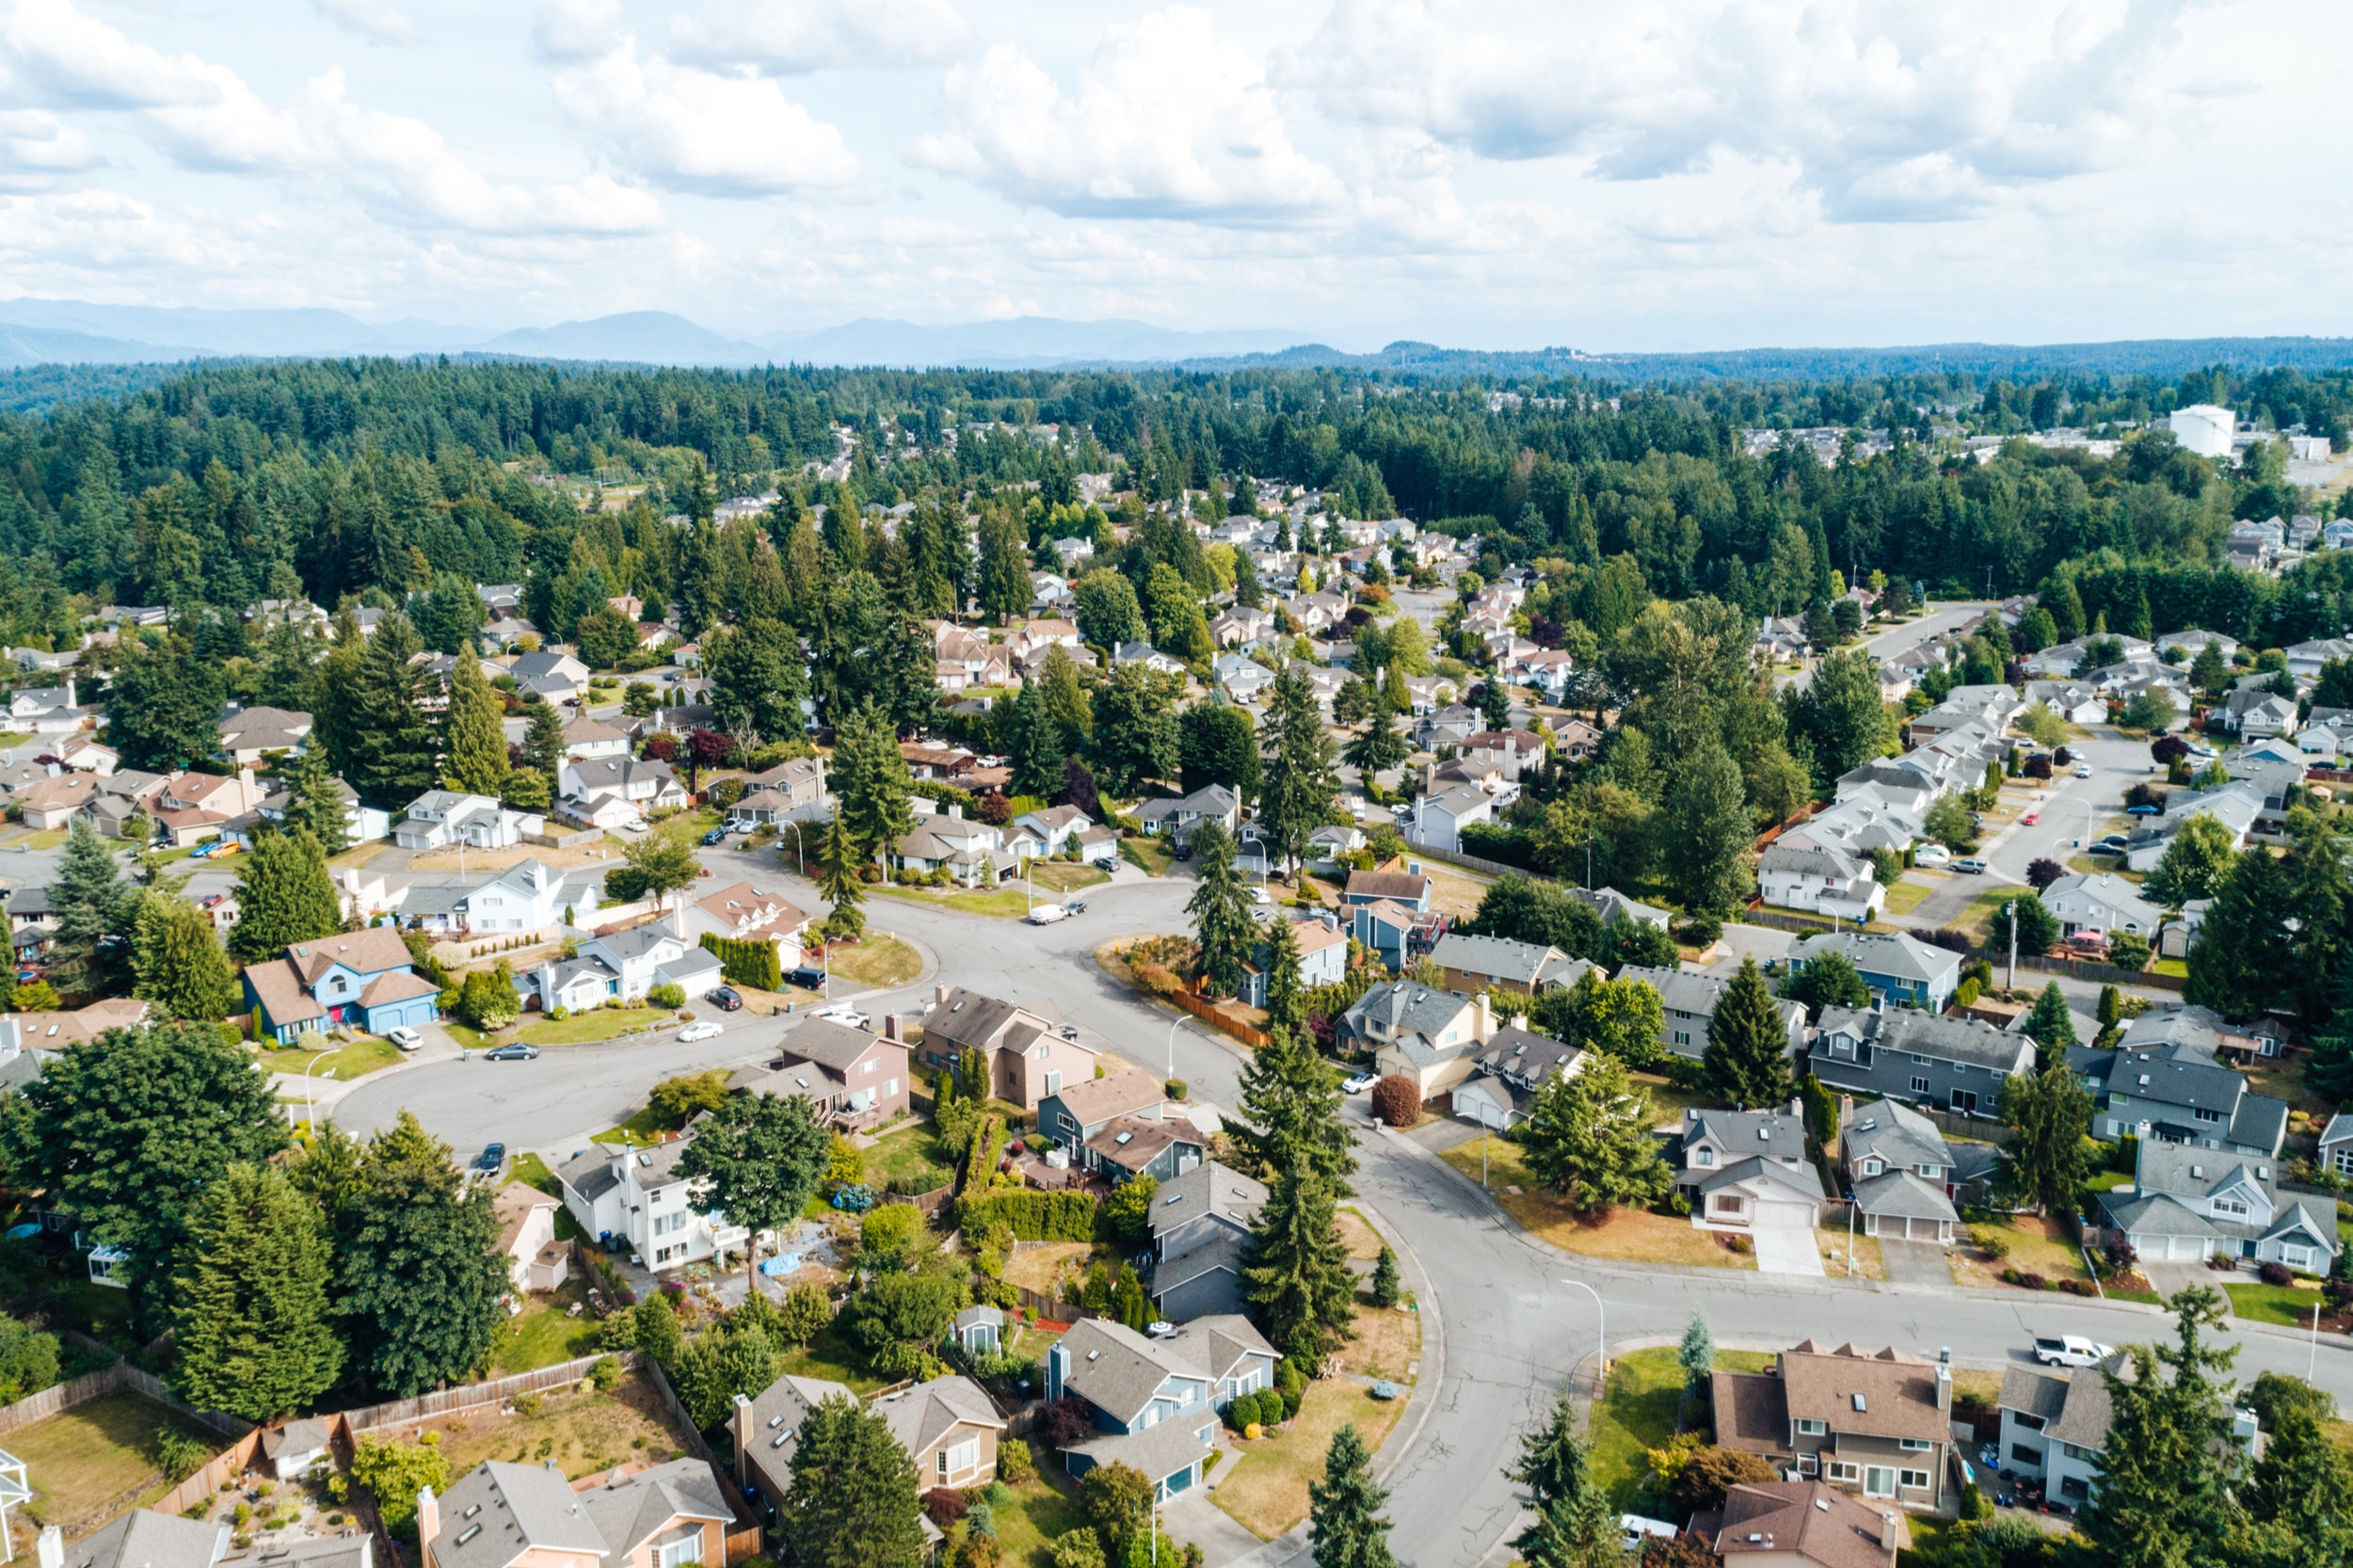 281 HOME Owners - Homes are well maintained, with pride of ownership evident. Many services are within walking distance: bank, coffee shop, gas, grocery and hardware stores are just around the corner.